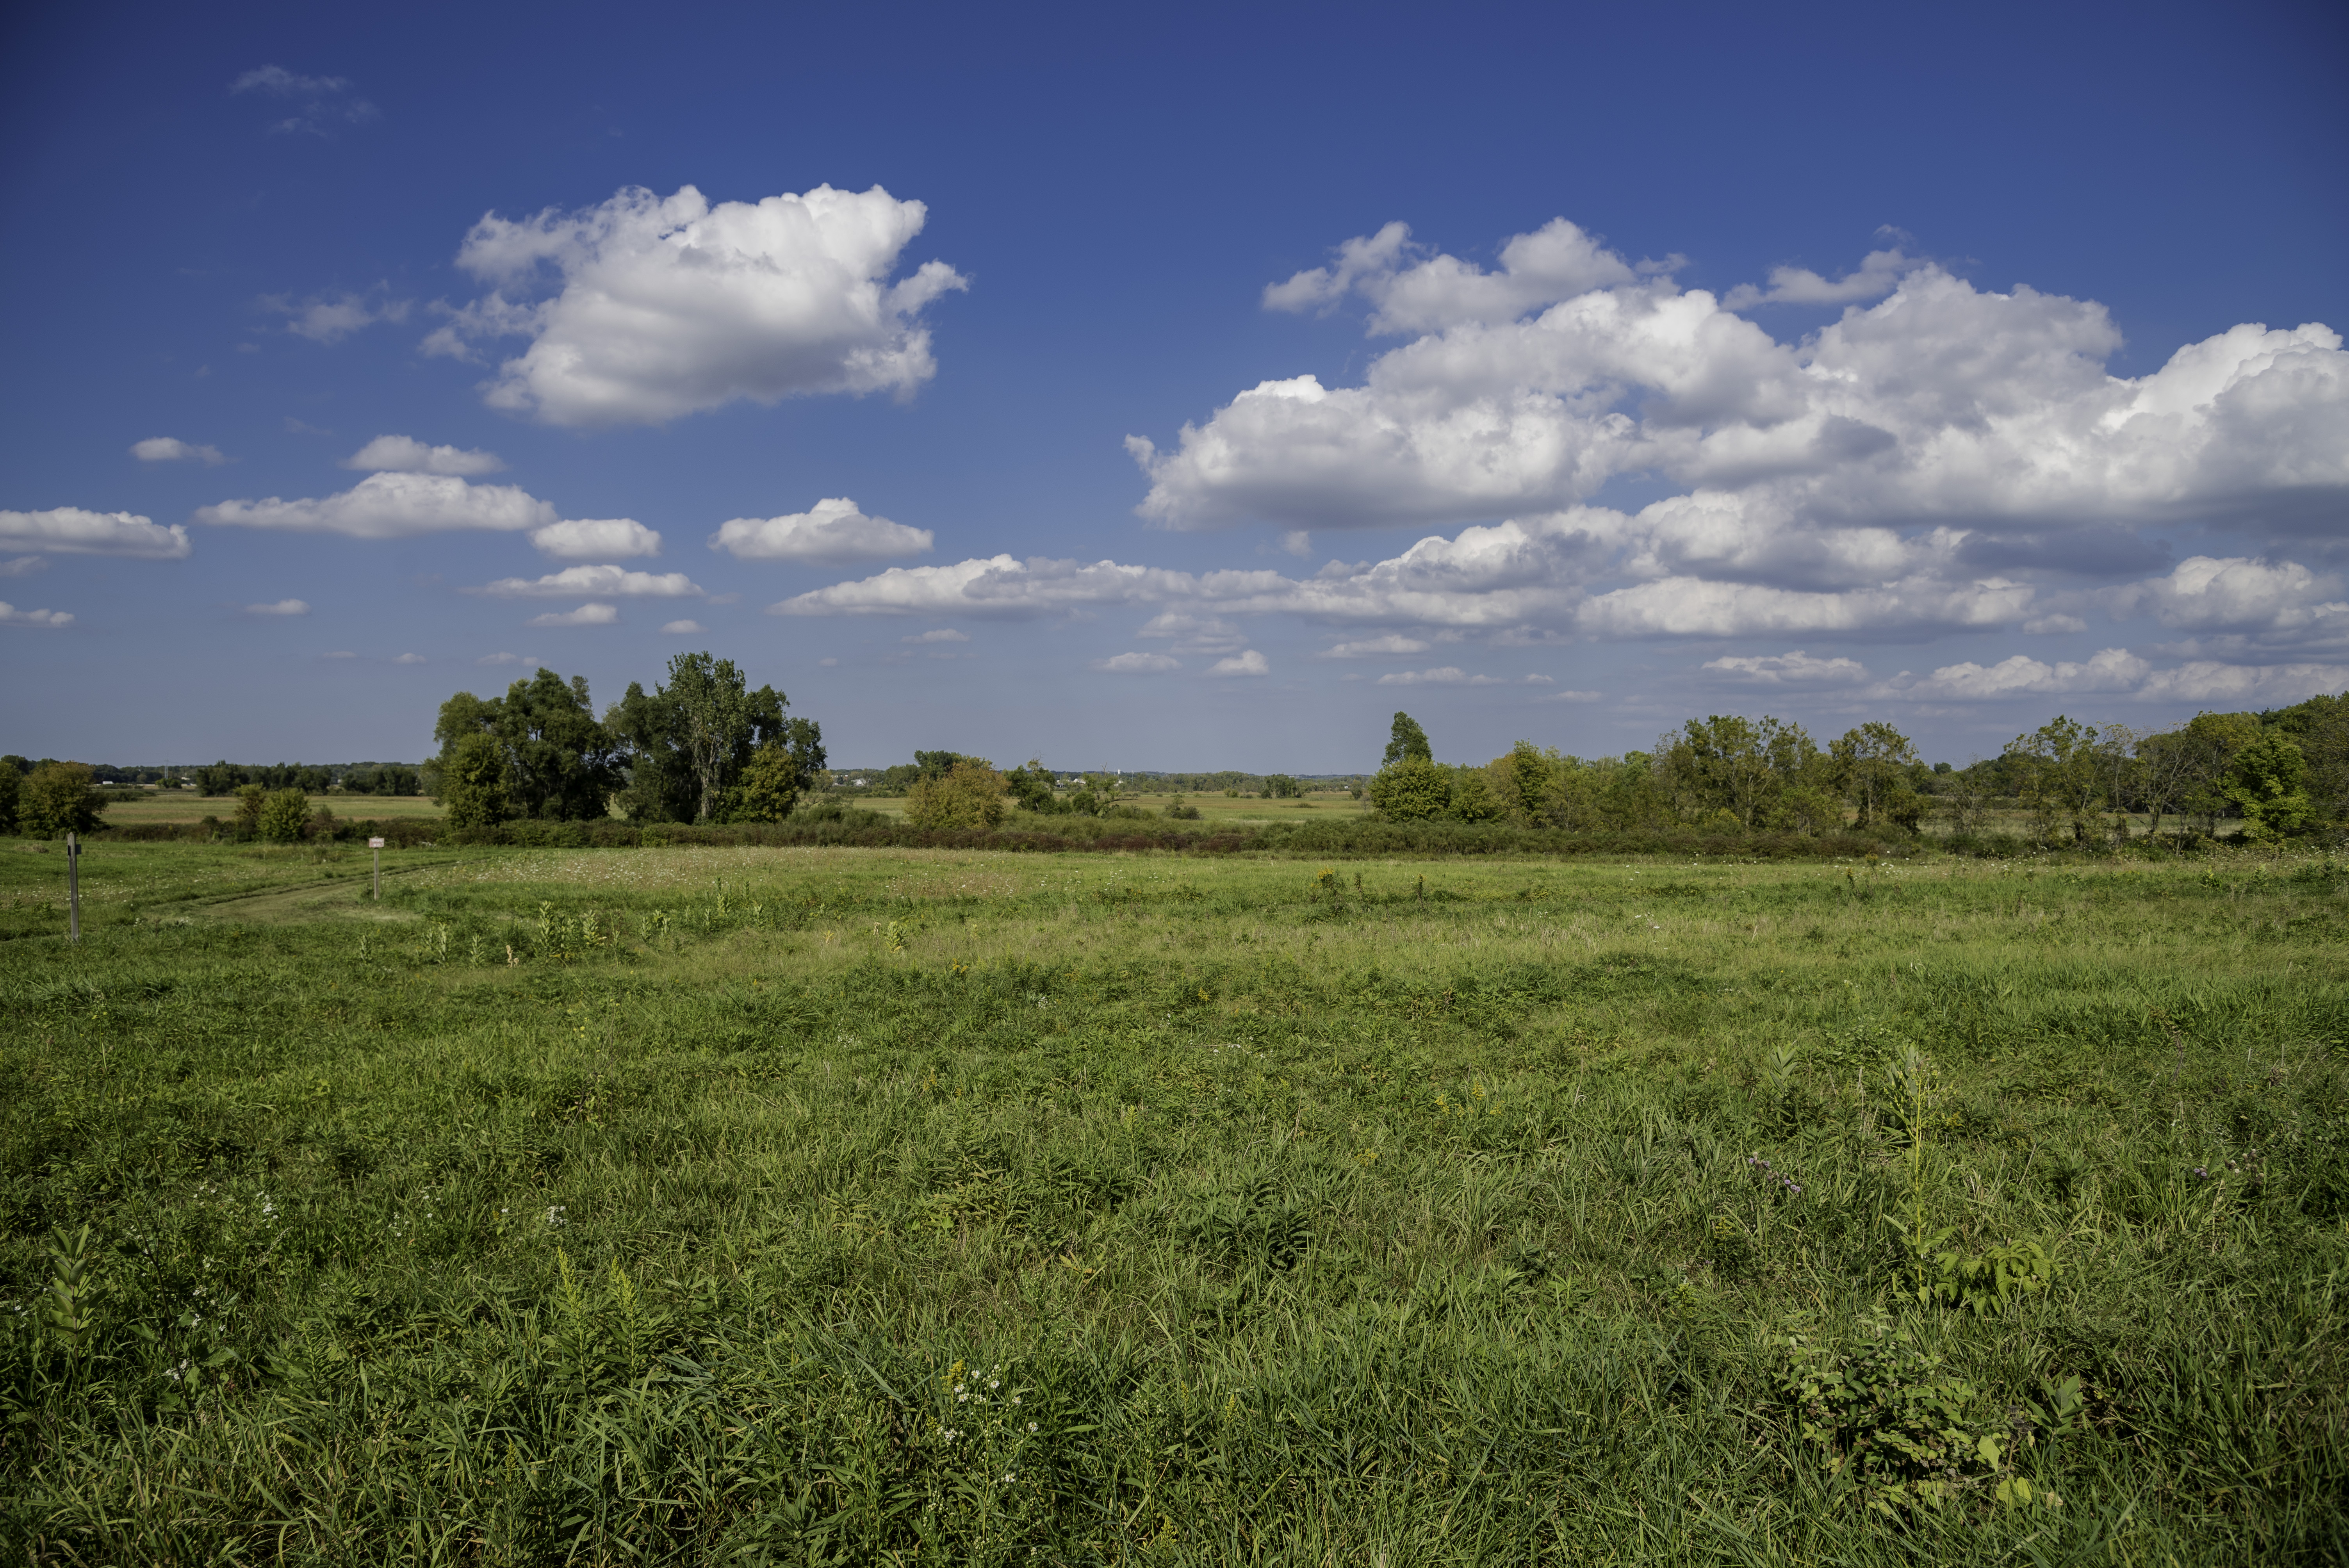 Grassy Field Landscape Under Sky And Clouds Image